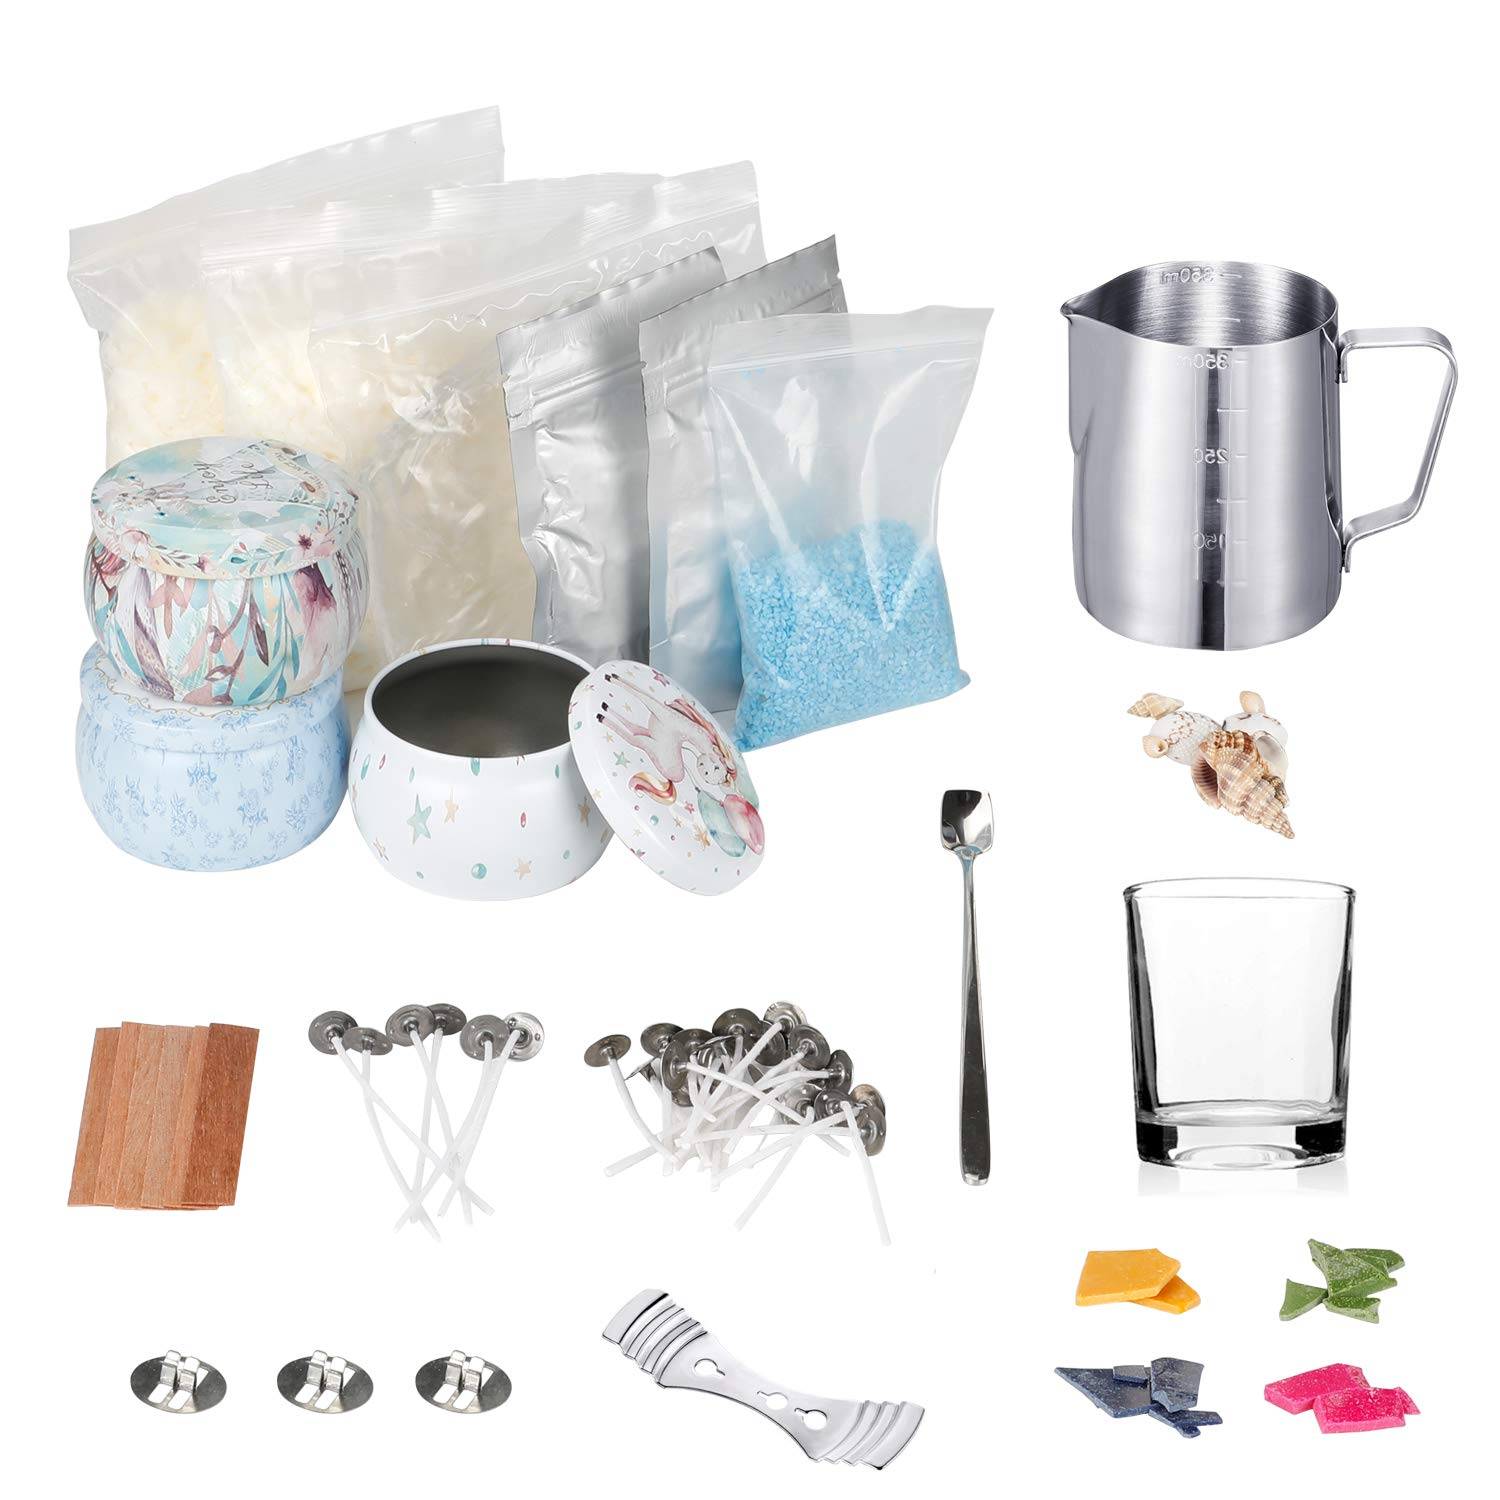 Dye Blocks Stirring Spoon Solid Essential Oil Melting Pot Candle Tins Wax Wick and More Soy Wax Candle Making Kit Complete Soy Candle Making Kit DIY Candle Making Kit- All-Natural Soy Wax